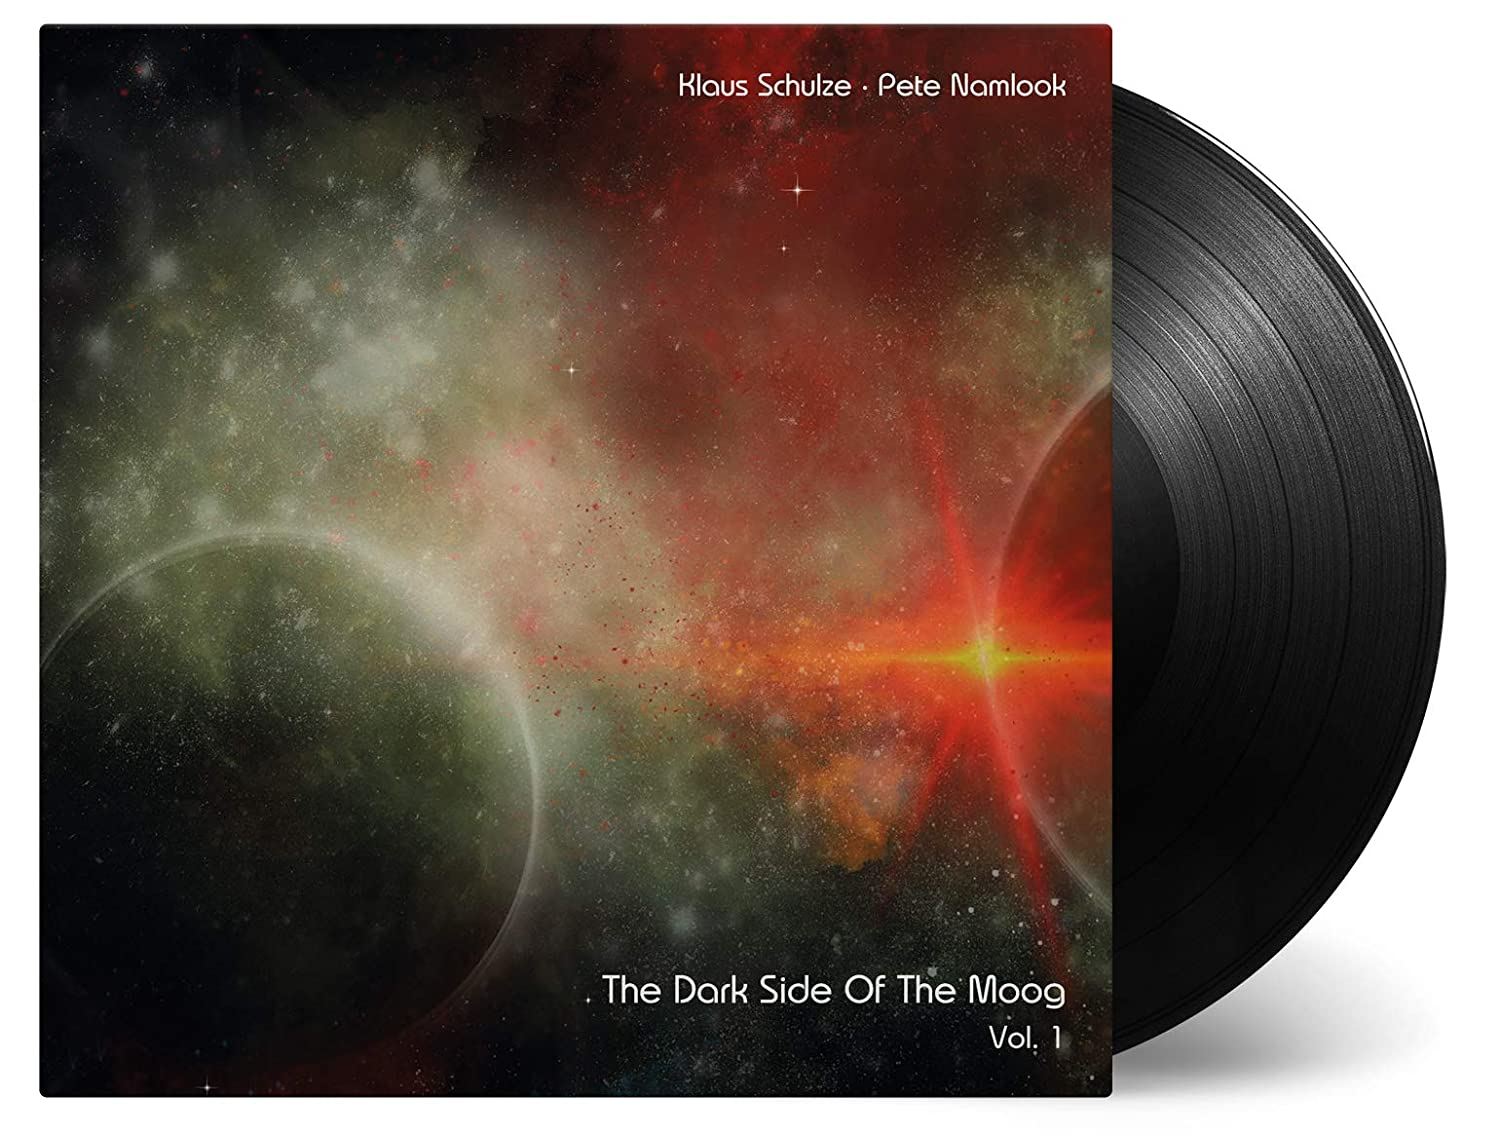 Dark Side Of The Moog Vol 1: Wish You Where There